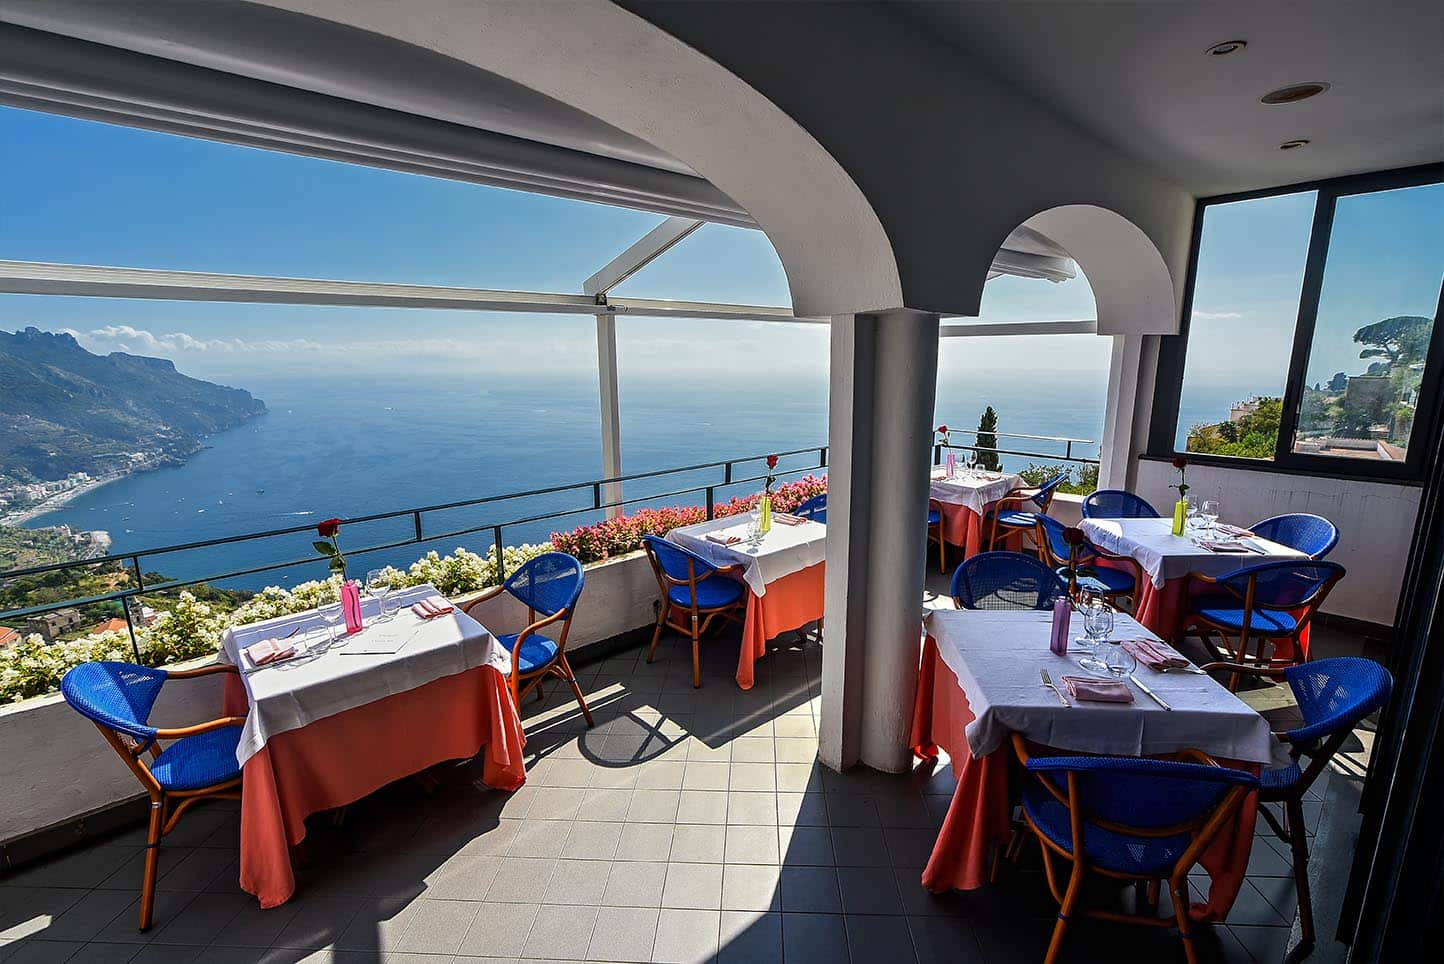 Al Ristoro del Moro restaurant panoramic view